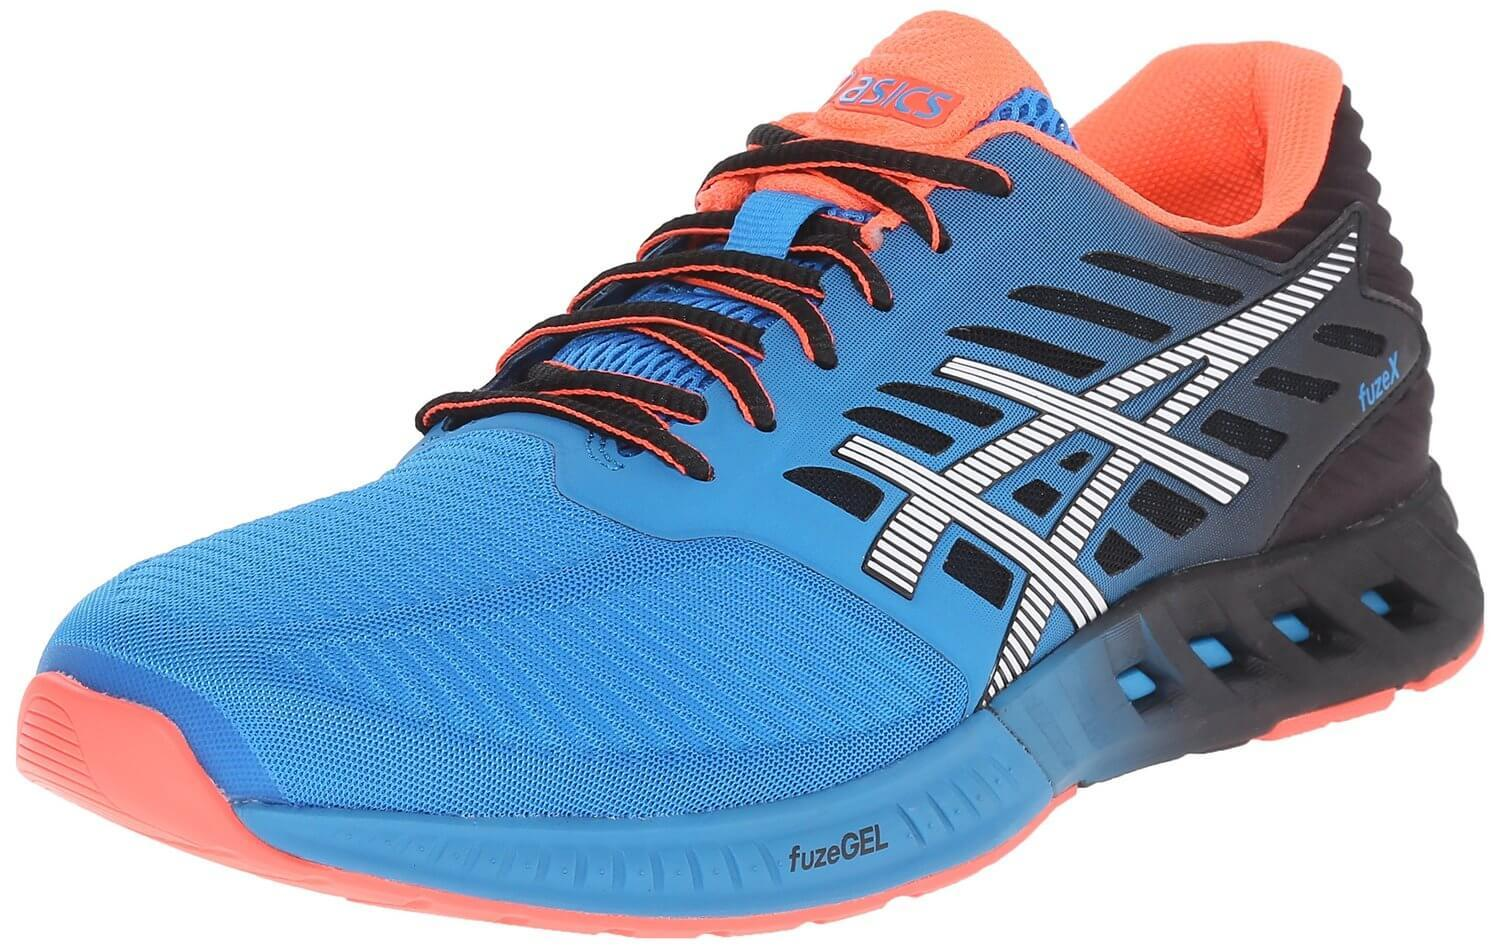 The Asics FuzeX is a fascinating new take on a cushioned running shoe.